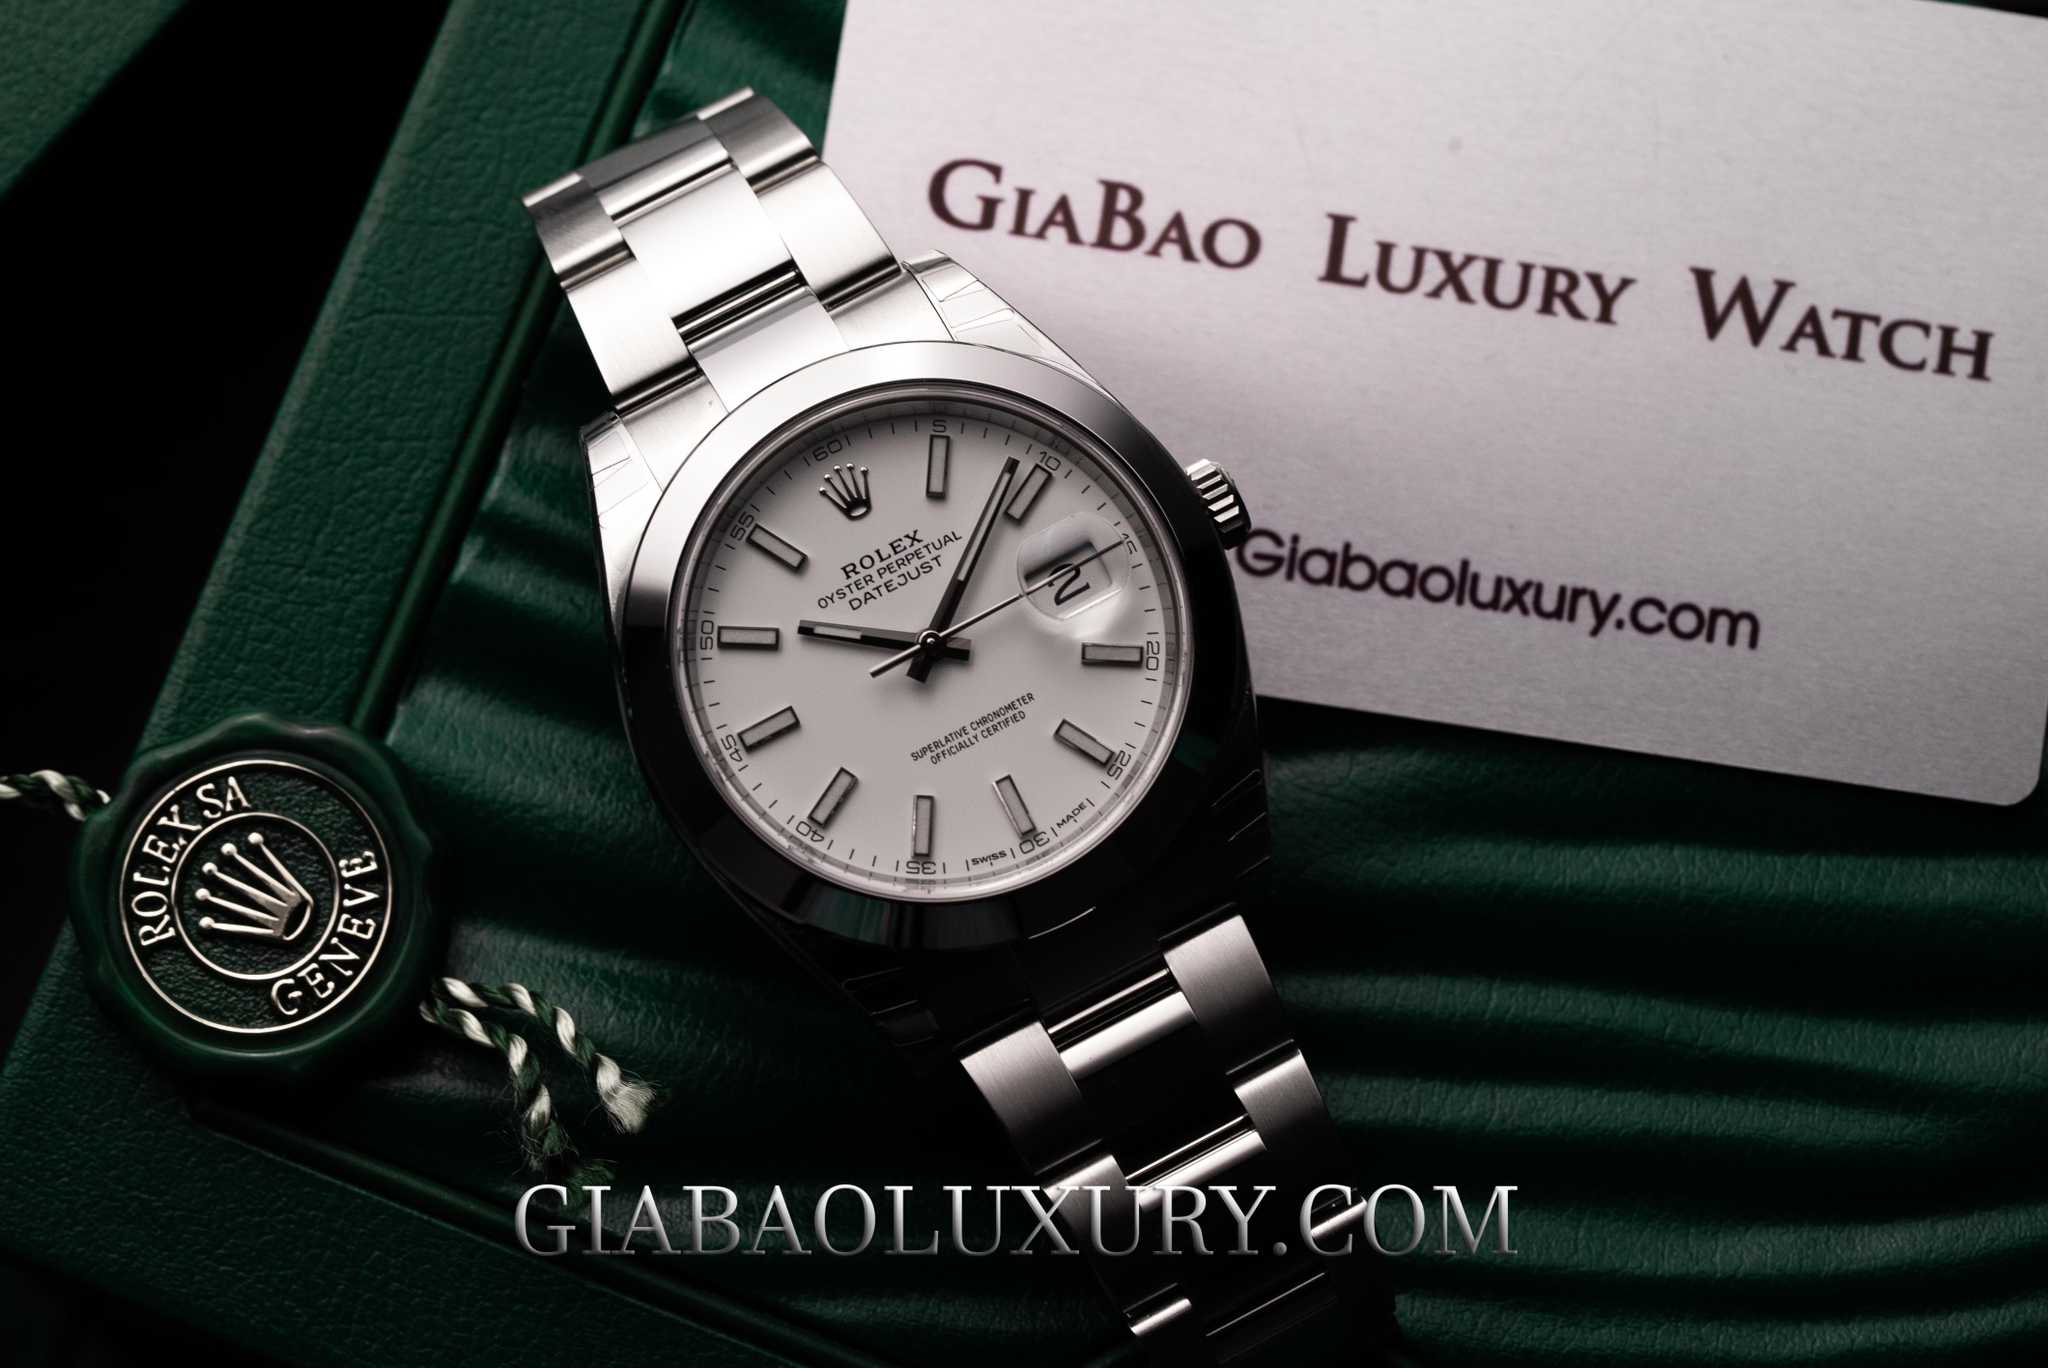 Đồng Hồ Rolex Datejust 41 126300 Mặt Số Trắng Dây Đeo Oyster